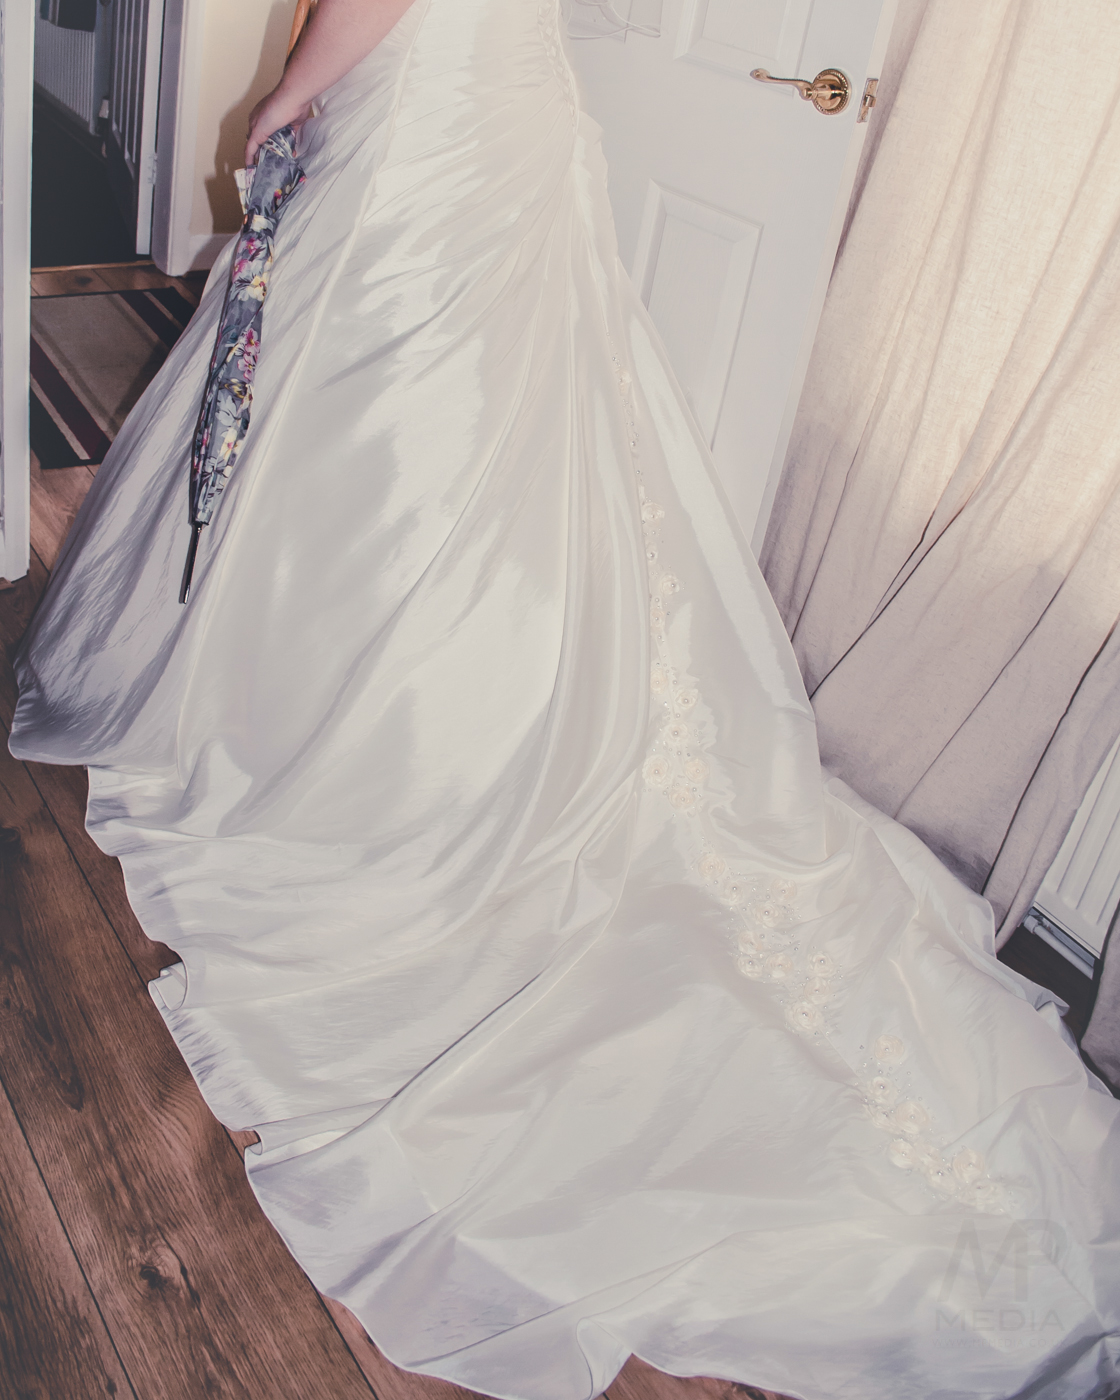 131 - Chris and Natalies Wedding (MAIN) - DO NOT SHARE THIS IMAGES ONLINE -4381.JPG